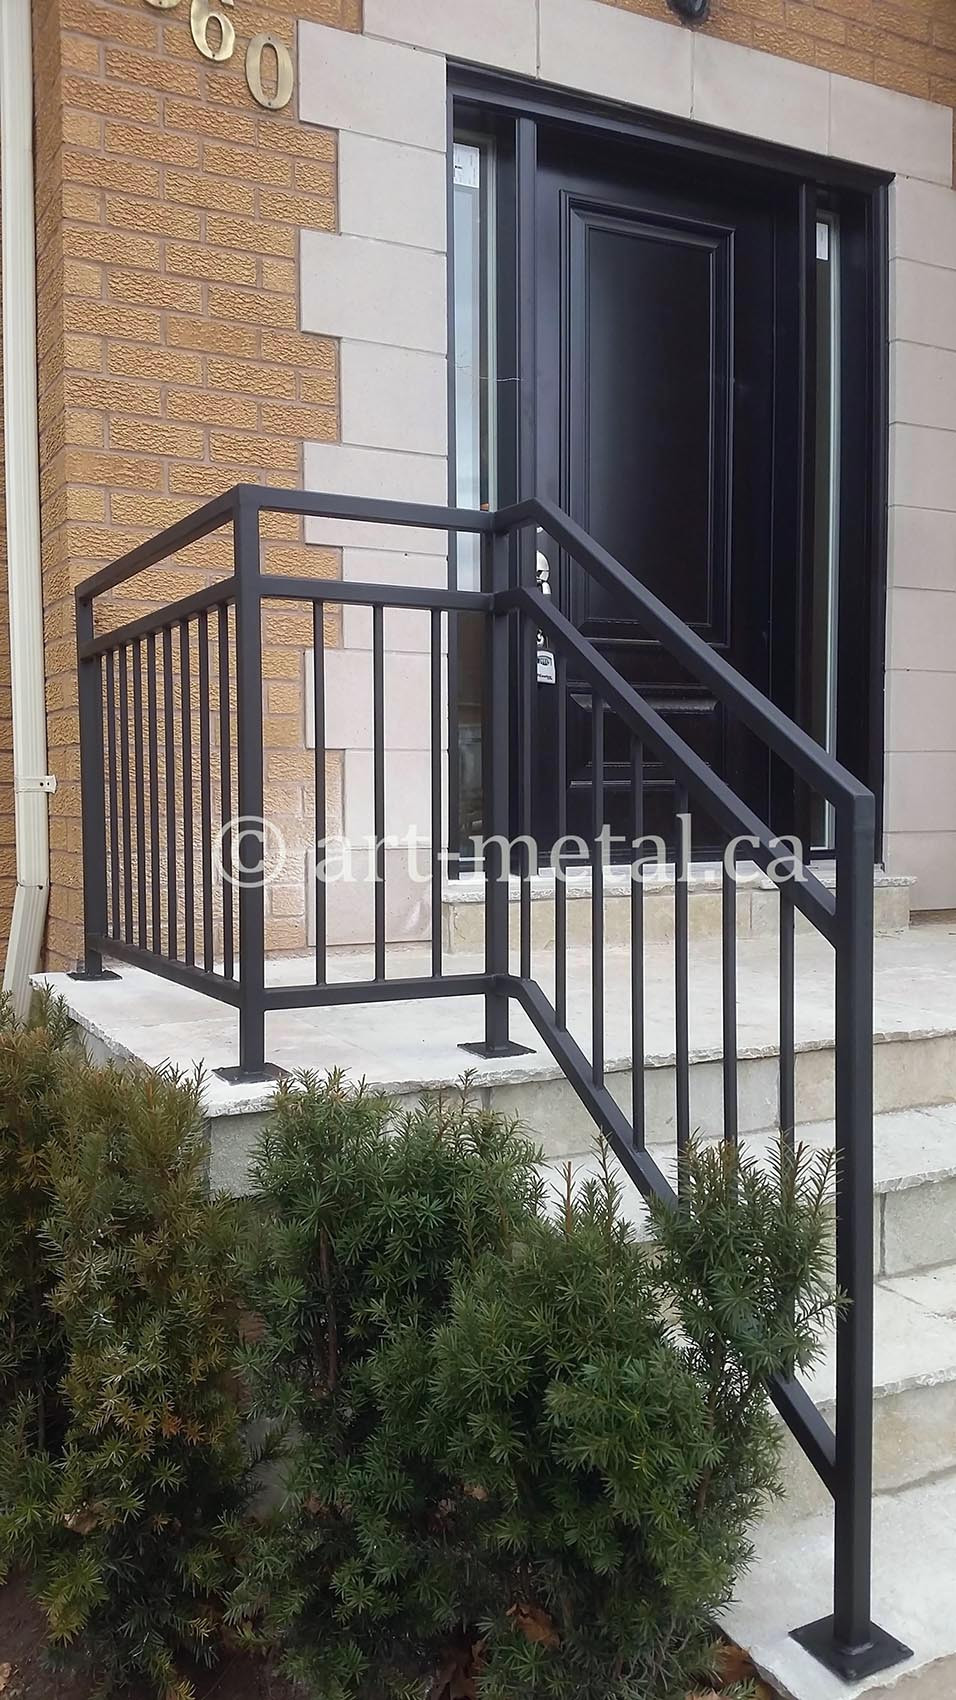 Best ideas about Outdoor Metal Stair Railing . Save or Pin Exterior Railings & Handrails for Stairs Porches Decks Now.